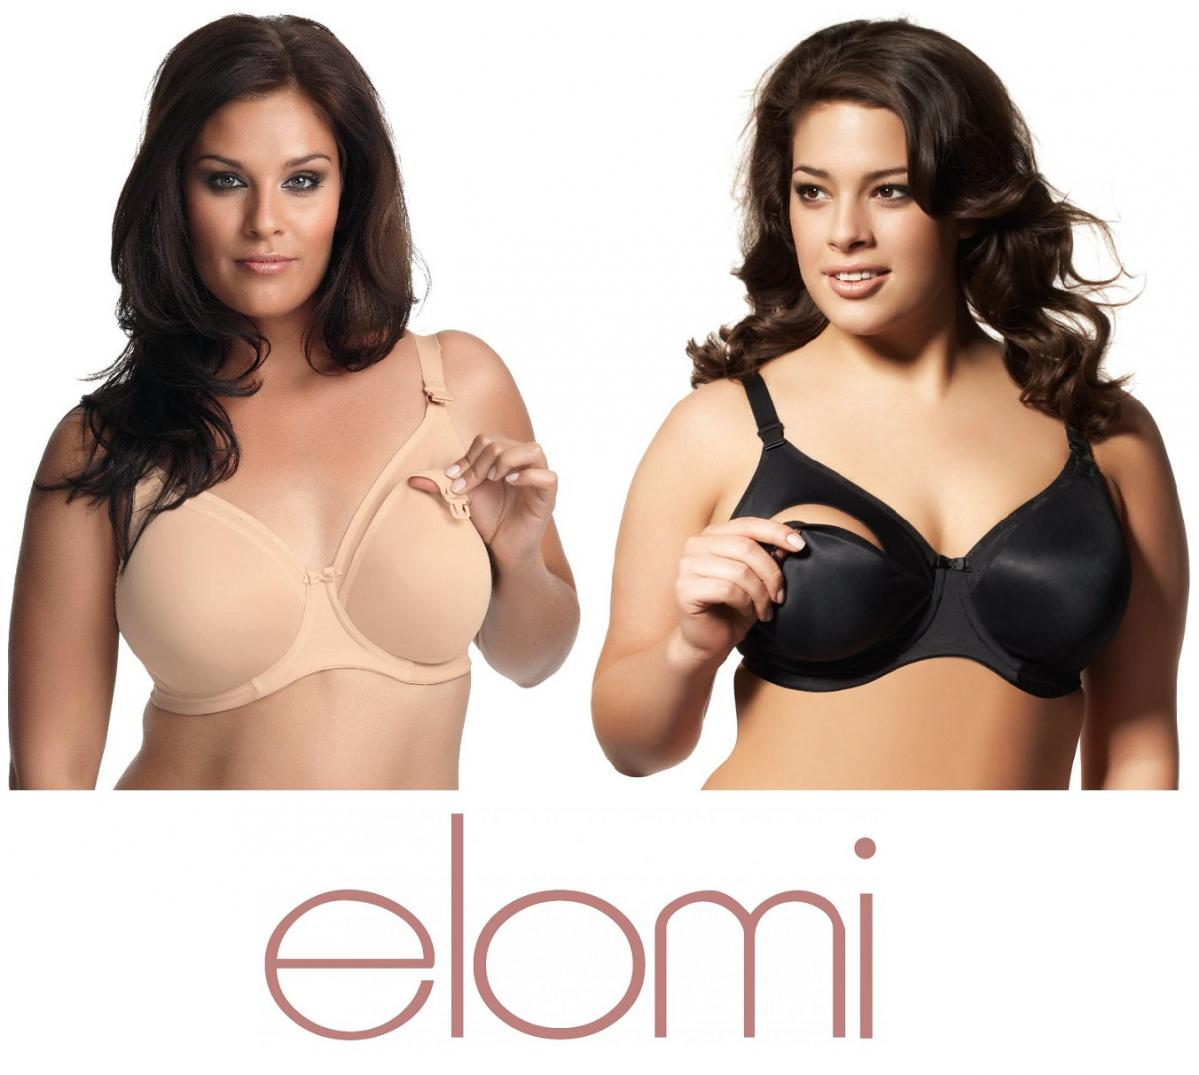 e1a6a37eb8 Elomi   Goddess Nursing Bras--Strong Support for Fuller Figures